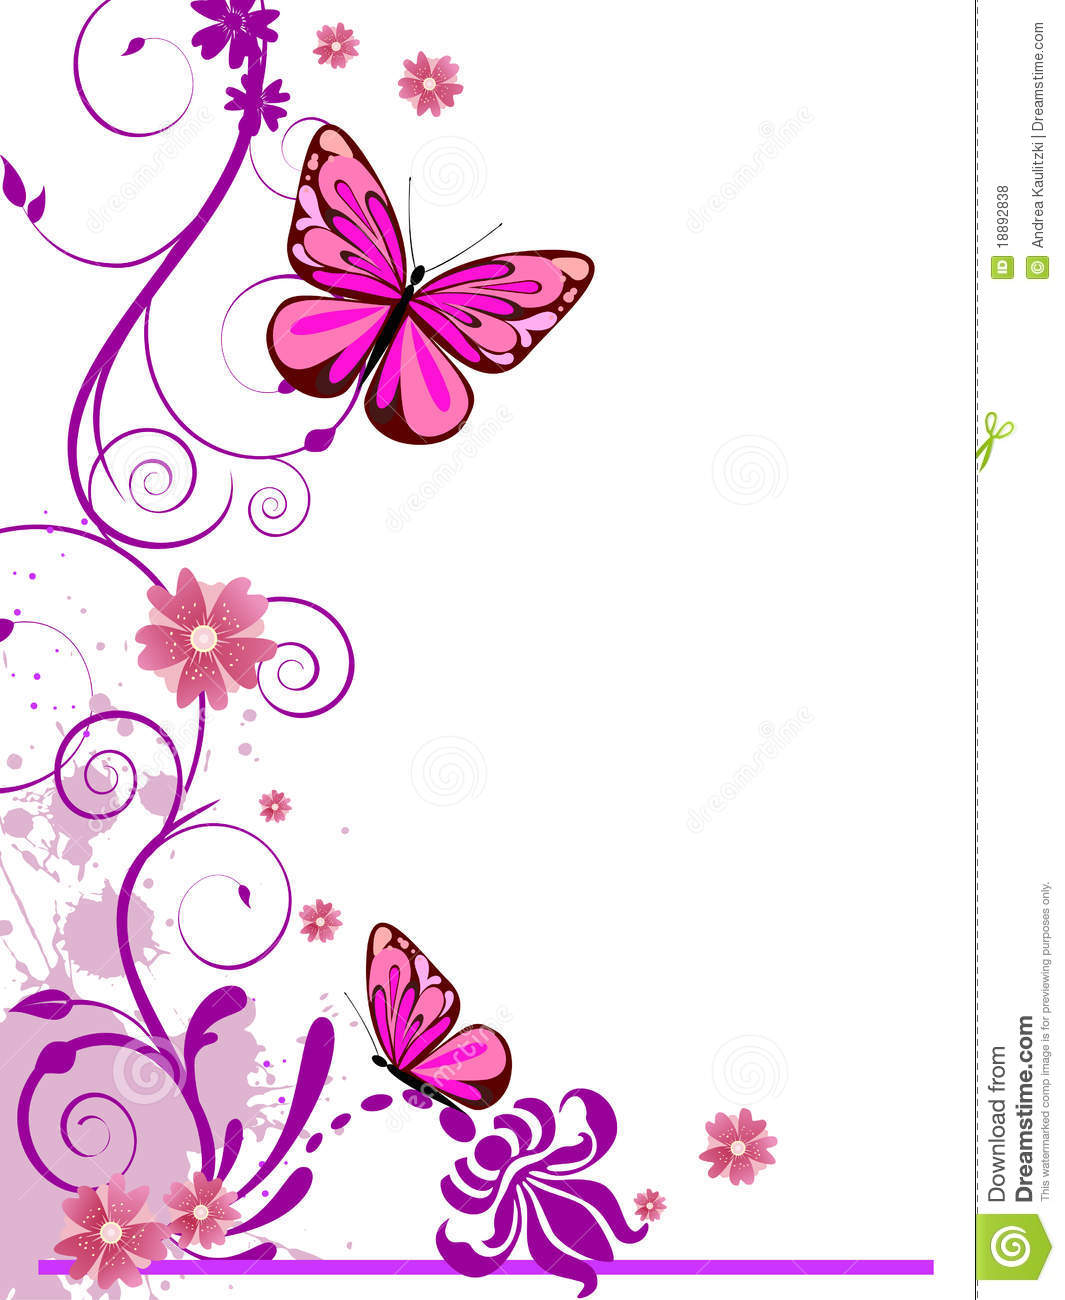 Illustration of colorful floral elements, flowers and butterfly.